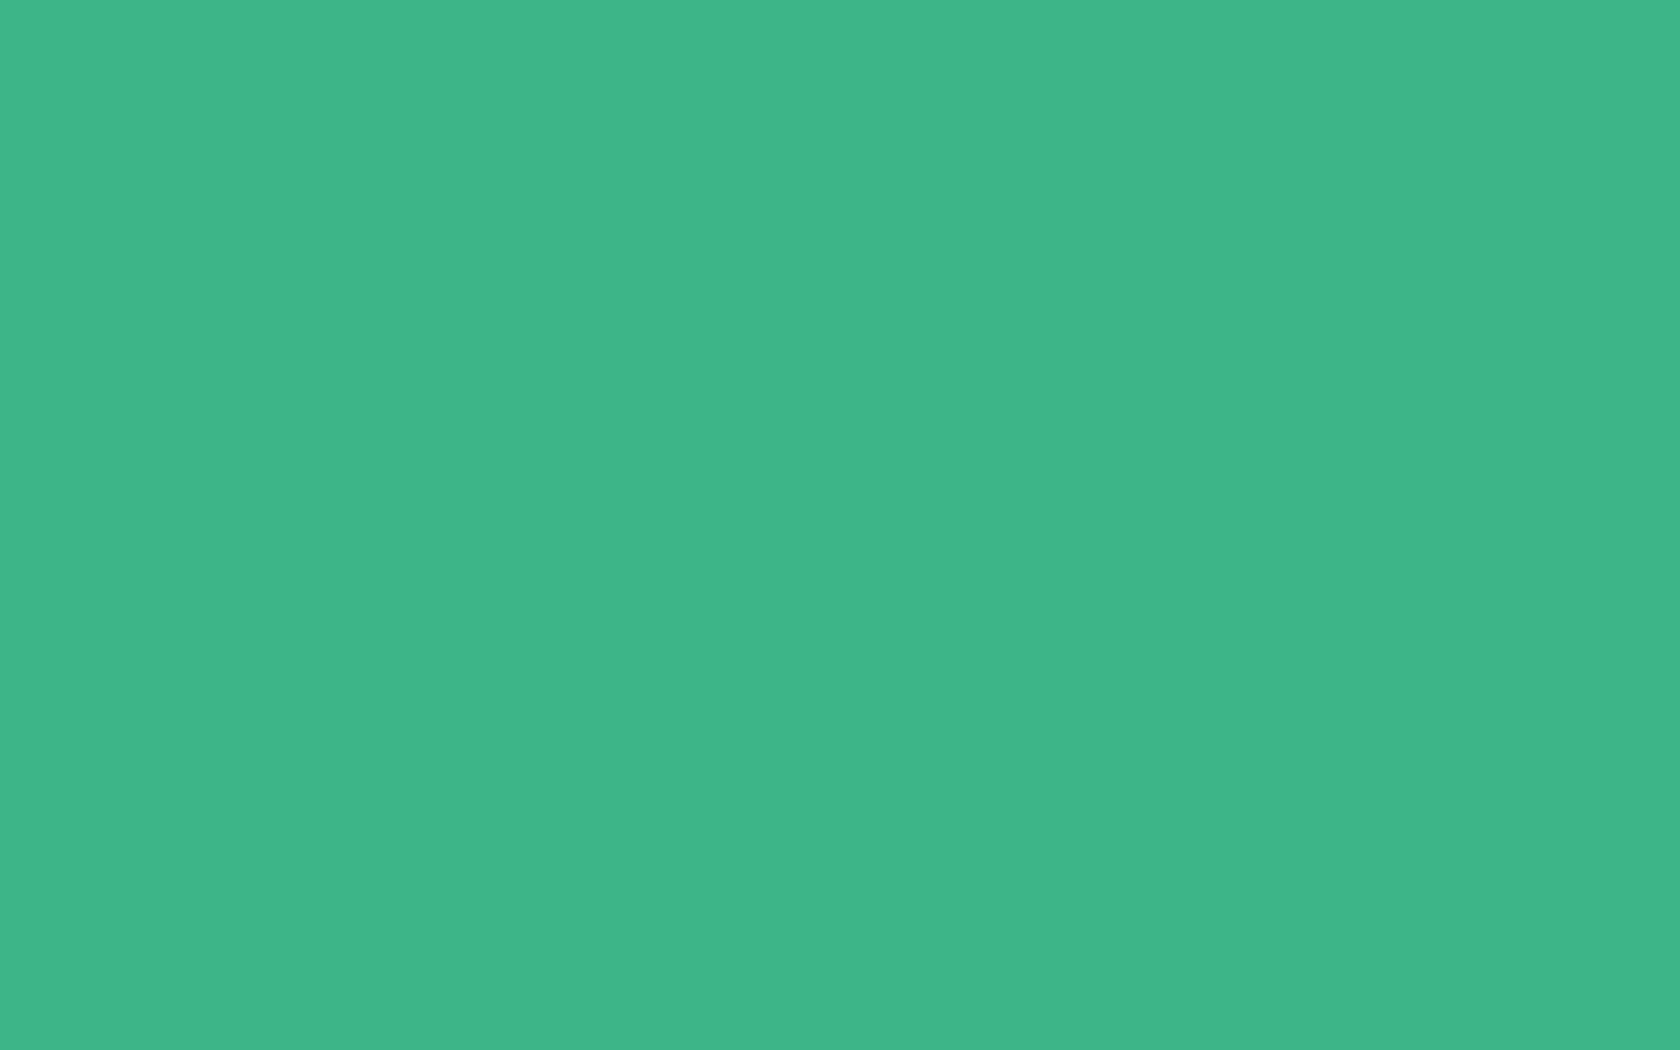 1680x1050 Mint Solid Color Background